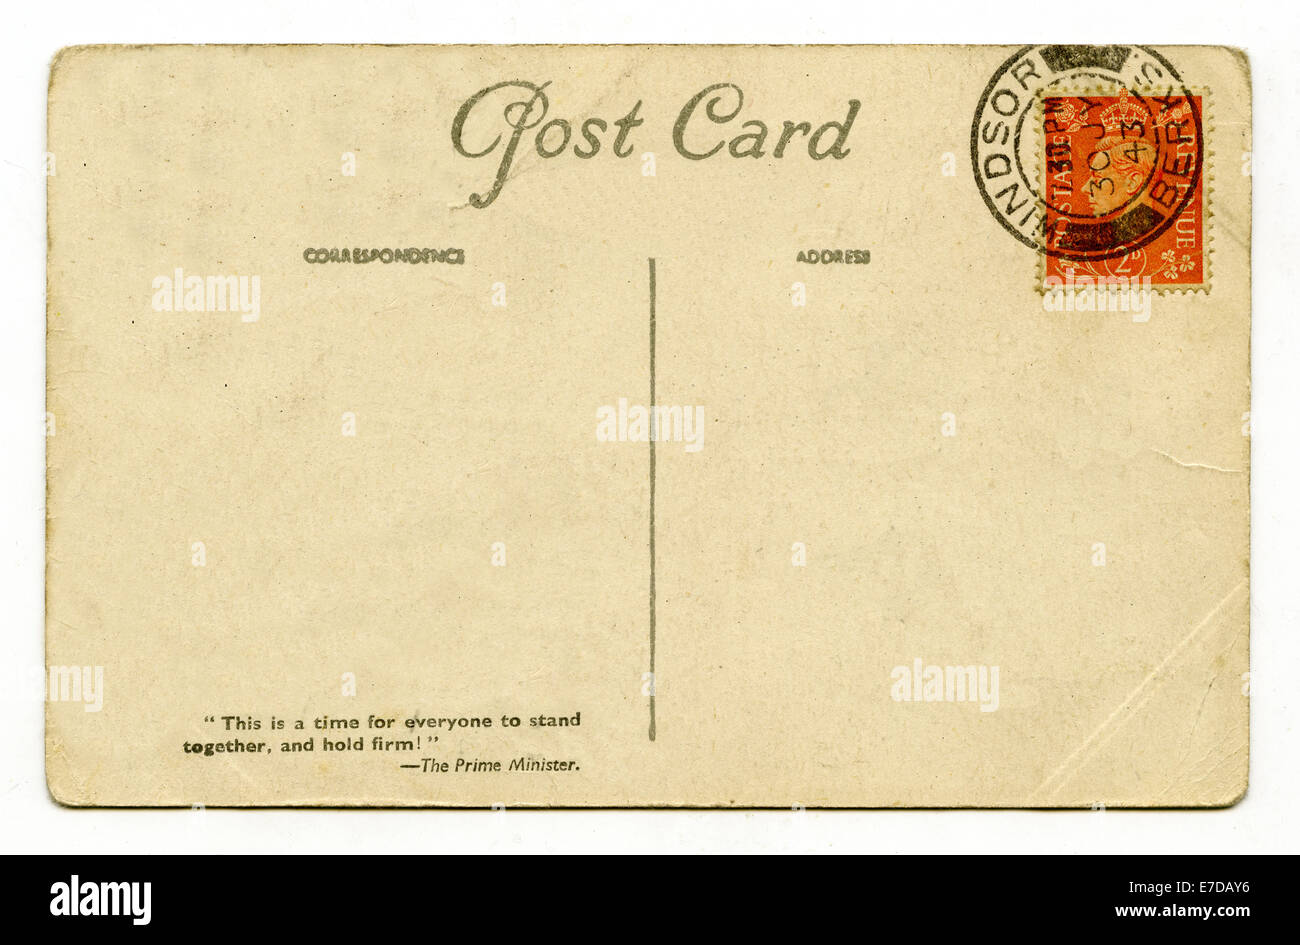 a vintage postcard over a plain white background